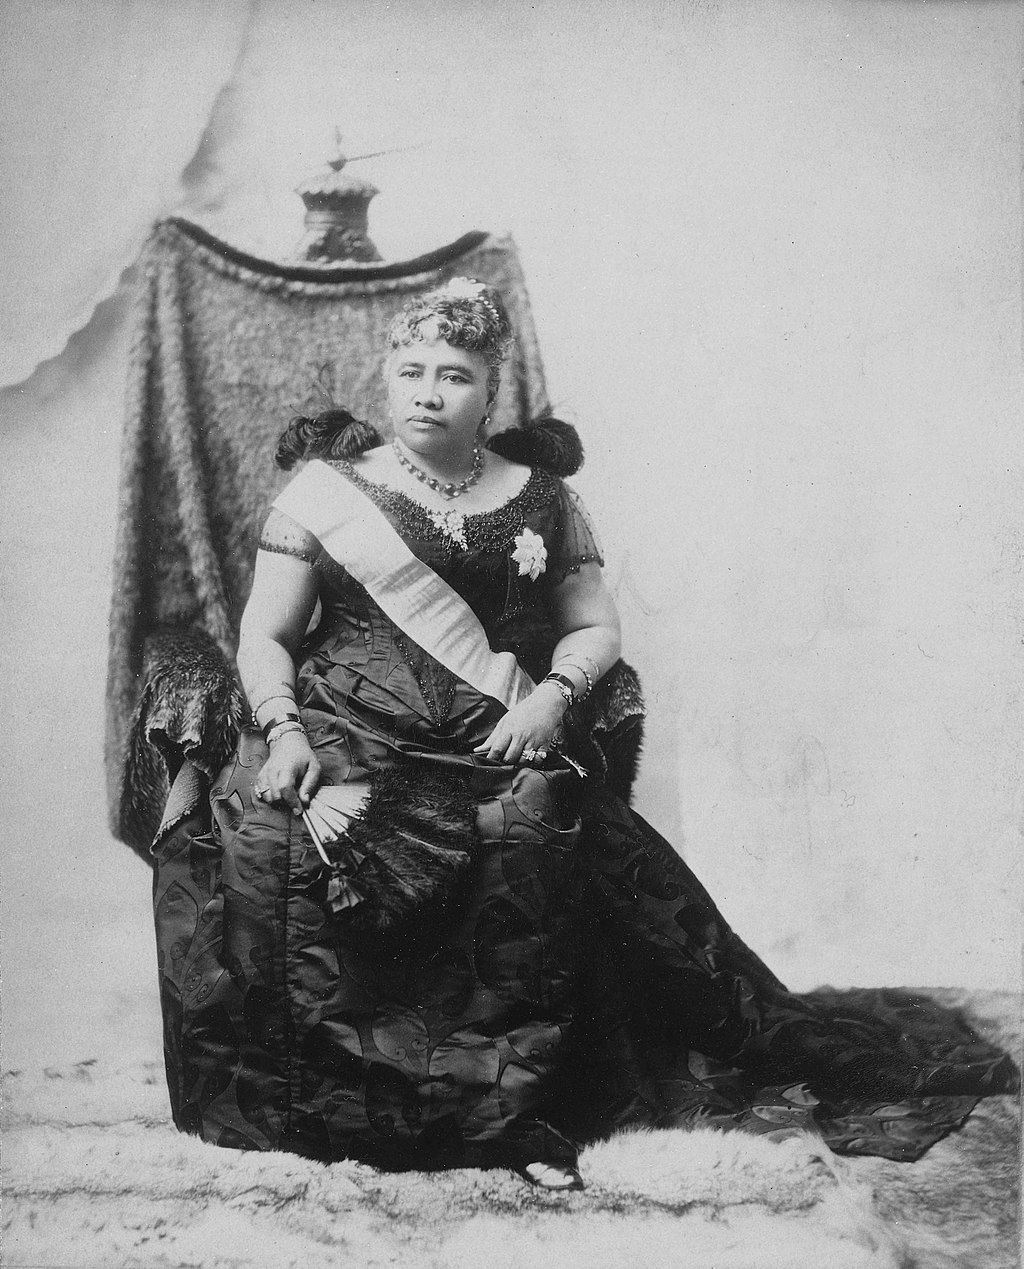 Queen Lili 'uokalani in an undated snap